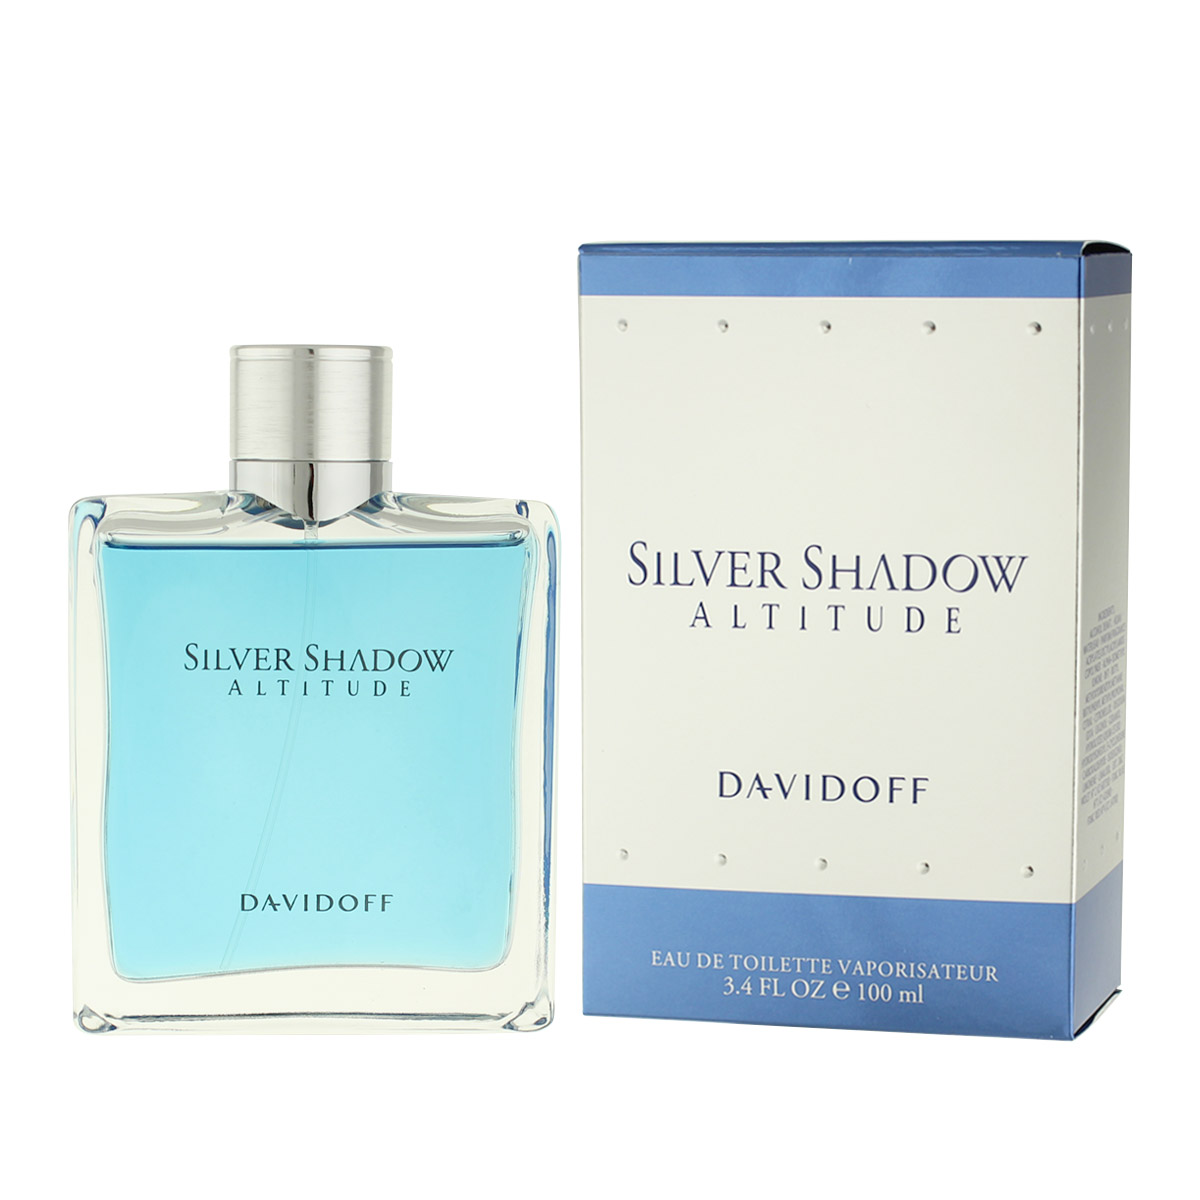 Davidoff Silver Shadow Altitude EDT 100 ml M